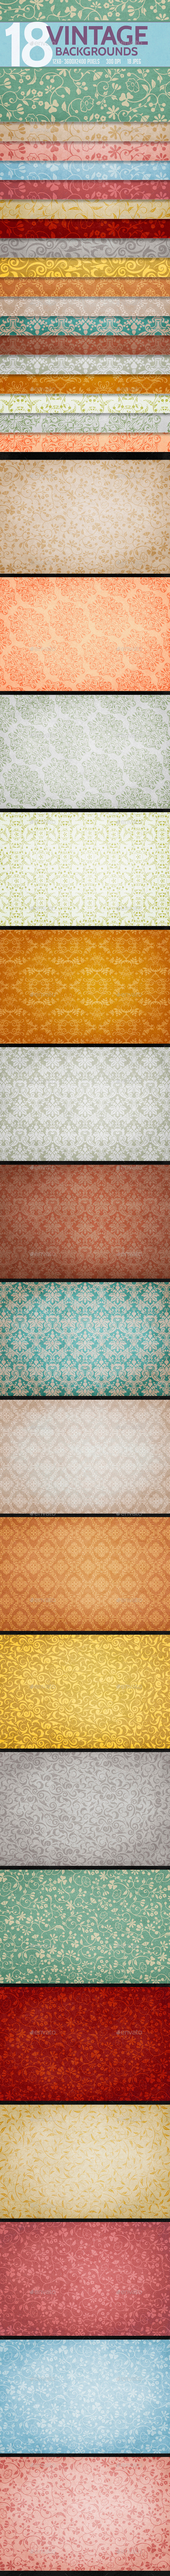 Vintage Backgrounds - Backgrounds Graphics